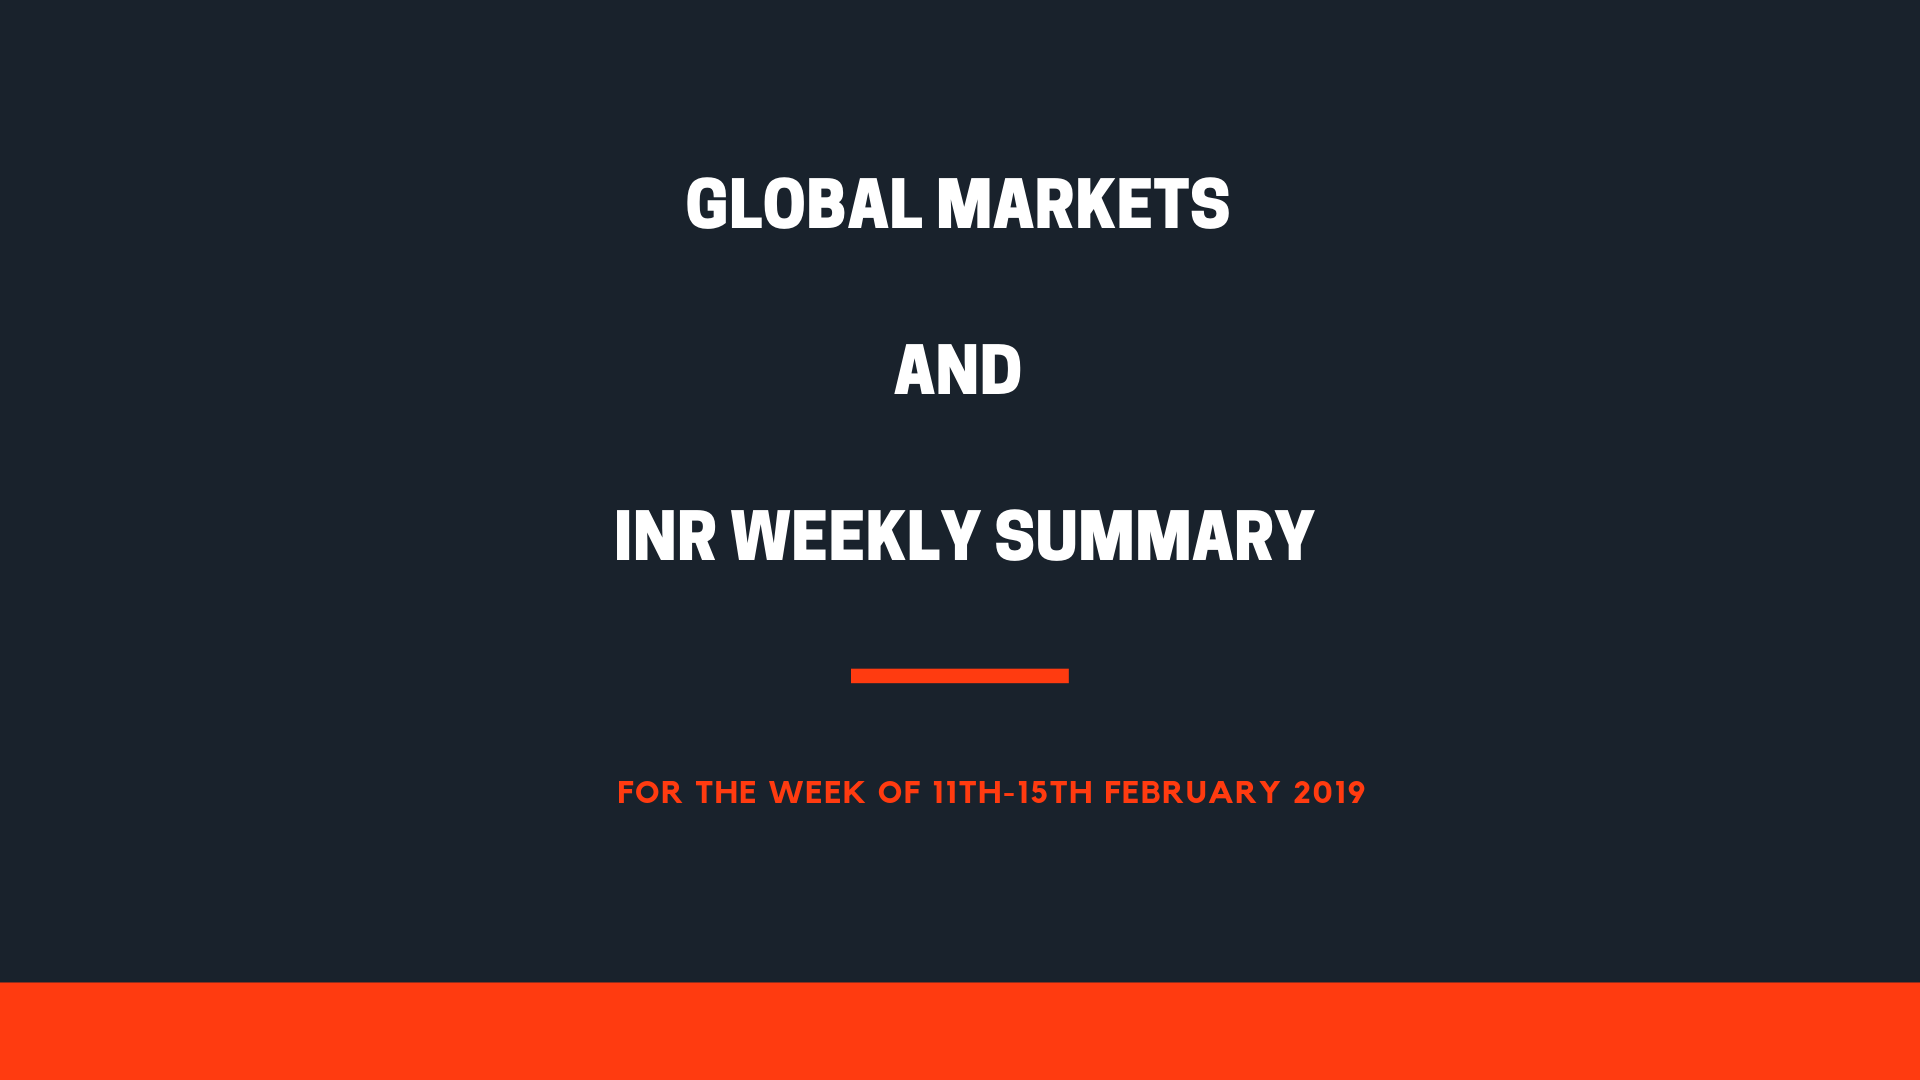 GLOBAL MARKETS AND INR WEEKLY SUMMARY (11th-15th February 2019)